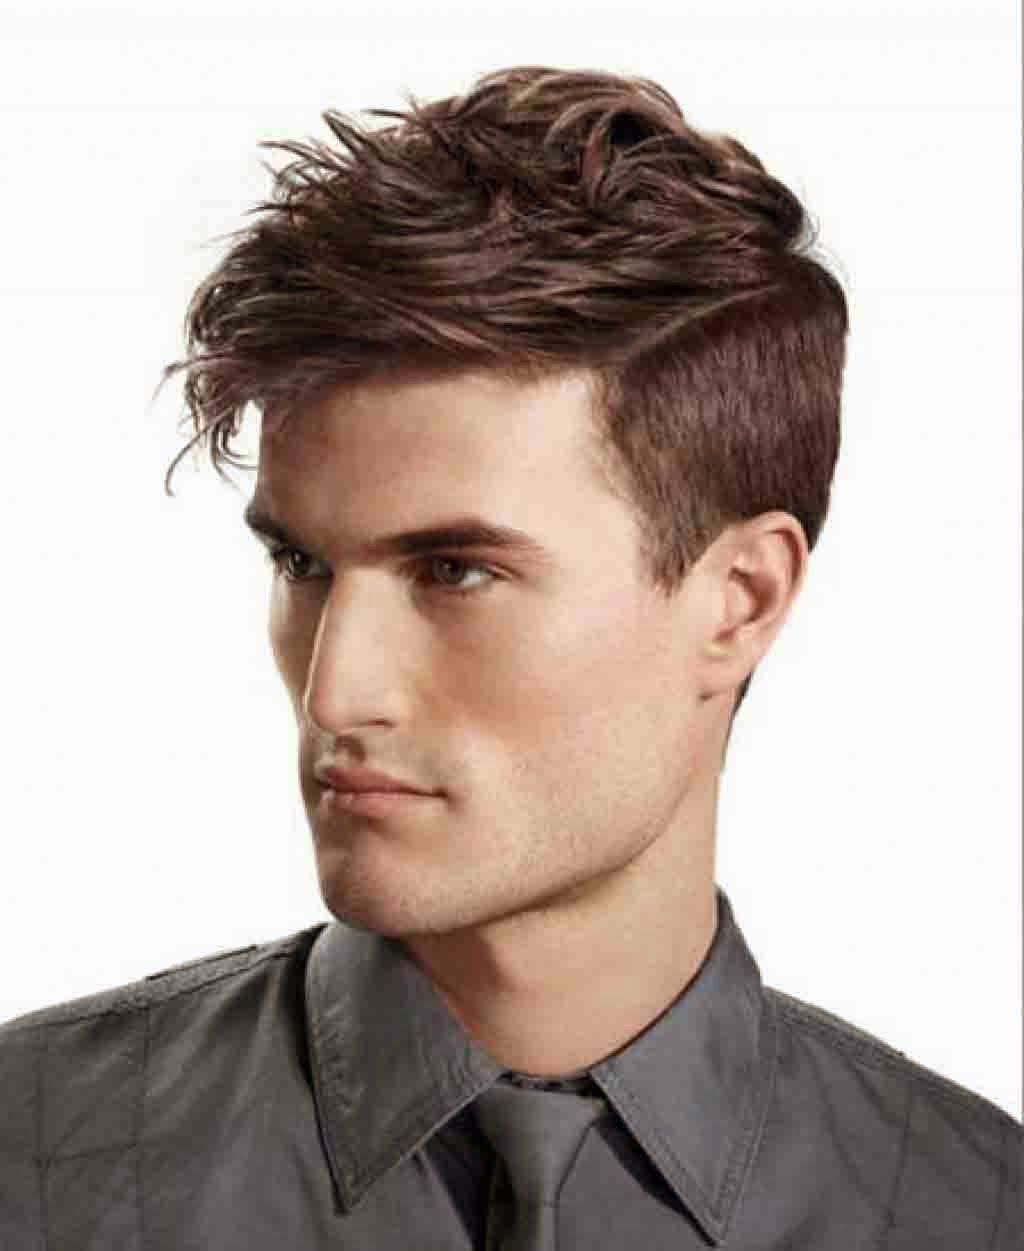 22+ Excellent Long Hairstyle In Boy Inspirations | Hair style